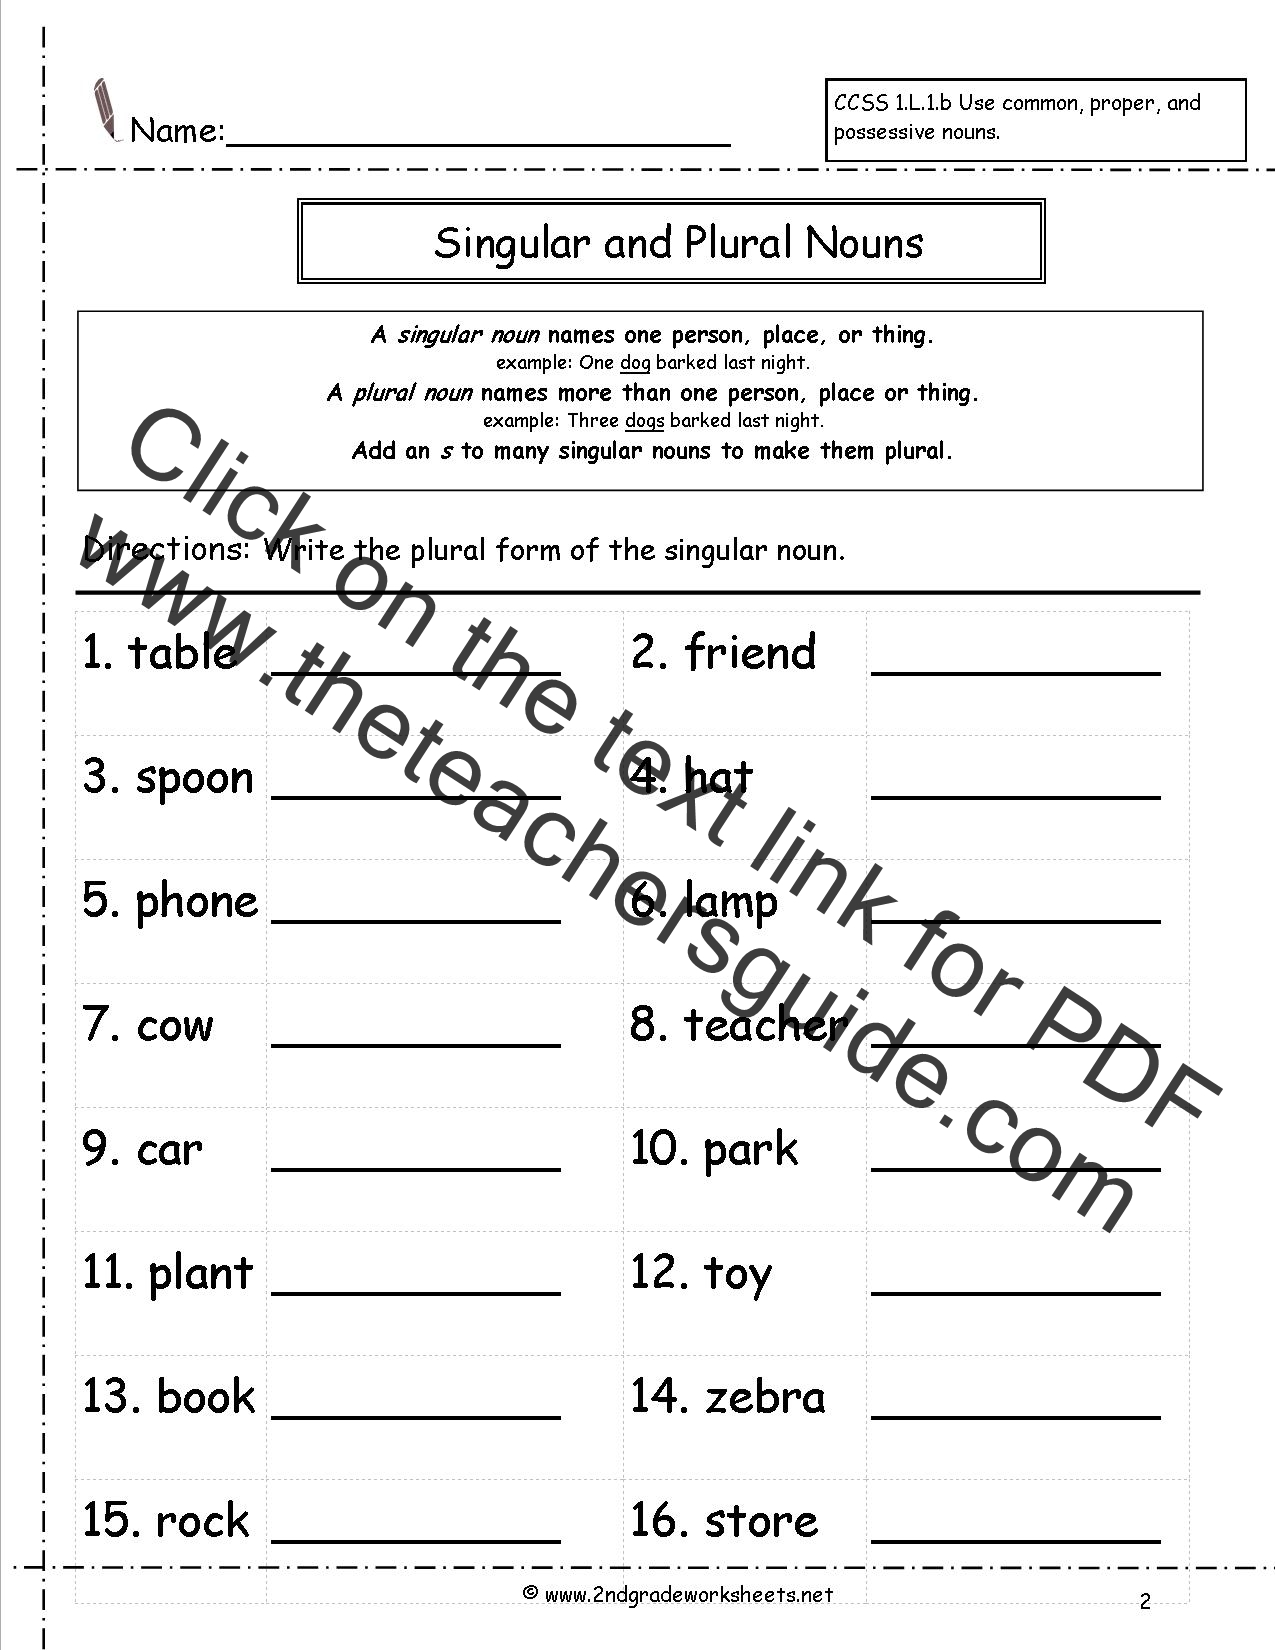 Common and Proper Nouns Worksheets from The Teacher'-s Guide